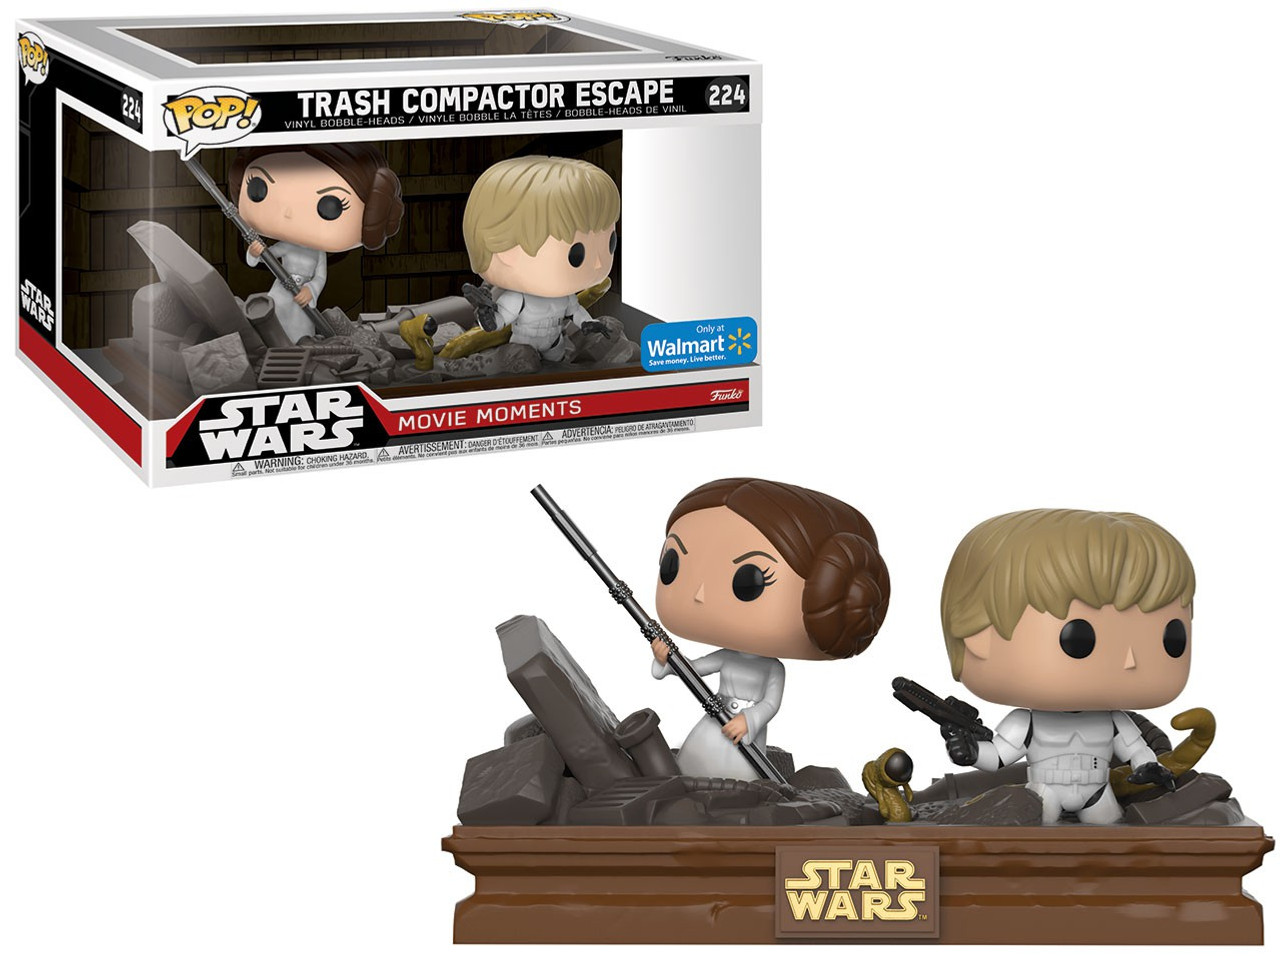 Funko POP! Star Wars Trash Compactor Escape (Luke & Leia) Exclusive Vinyl Figure 2-Pack [Movie Moments]